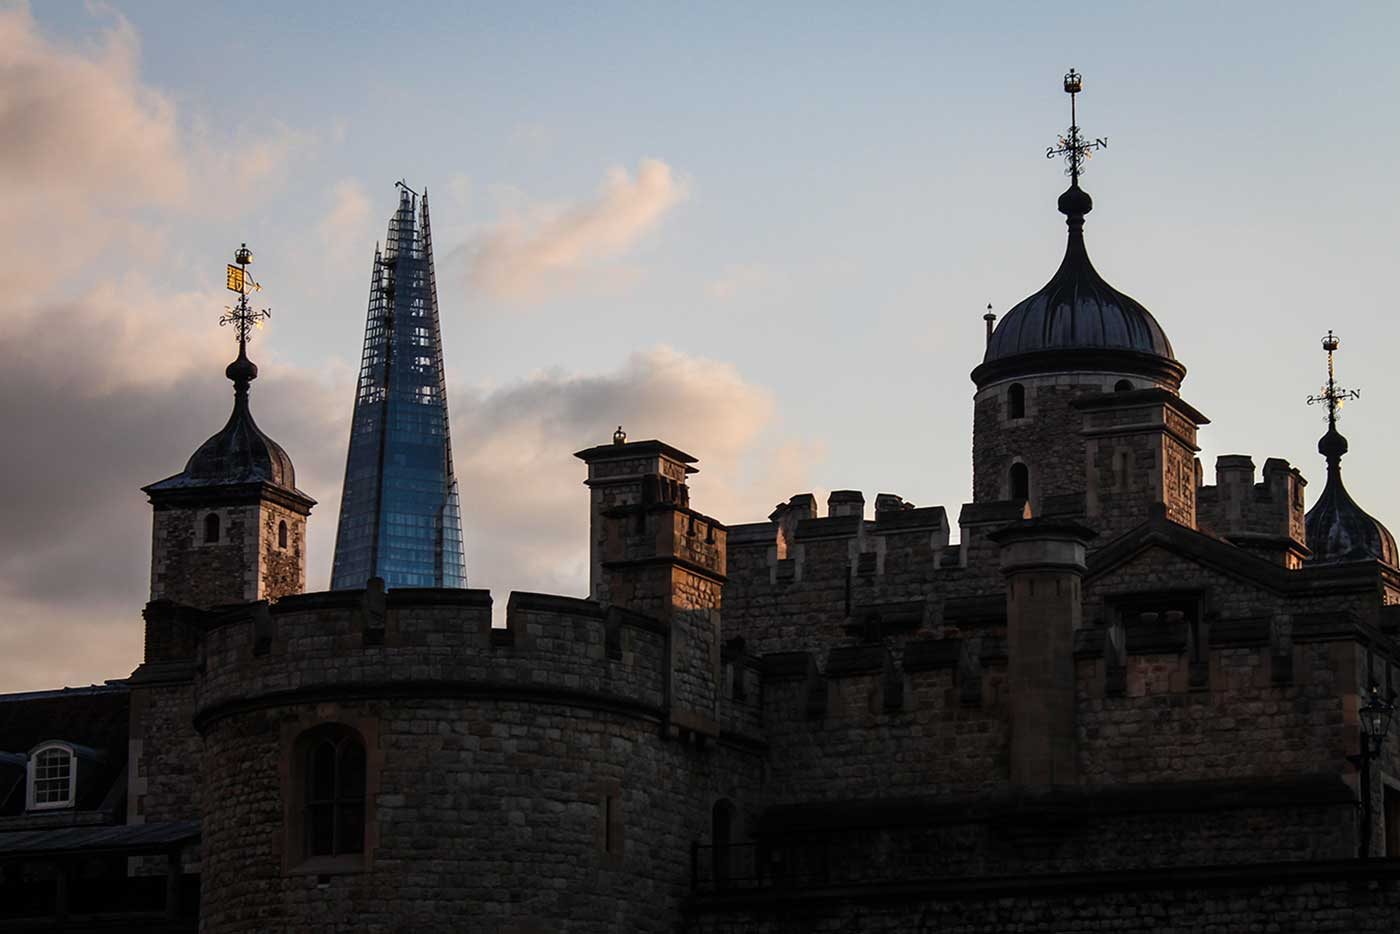 The Great Work-15 Tower of London-2